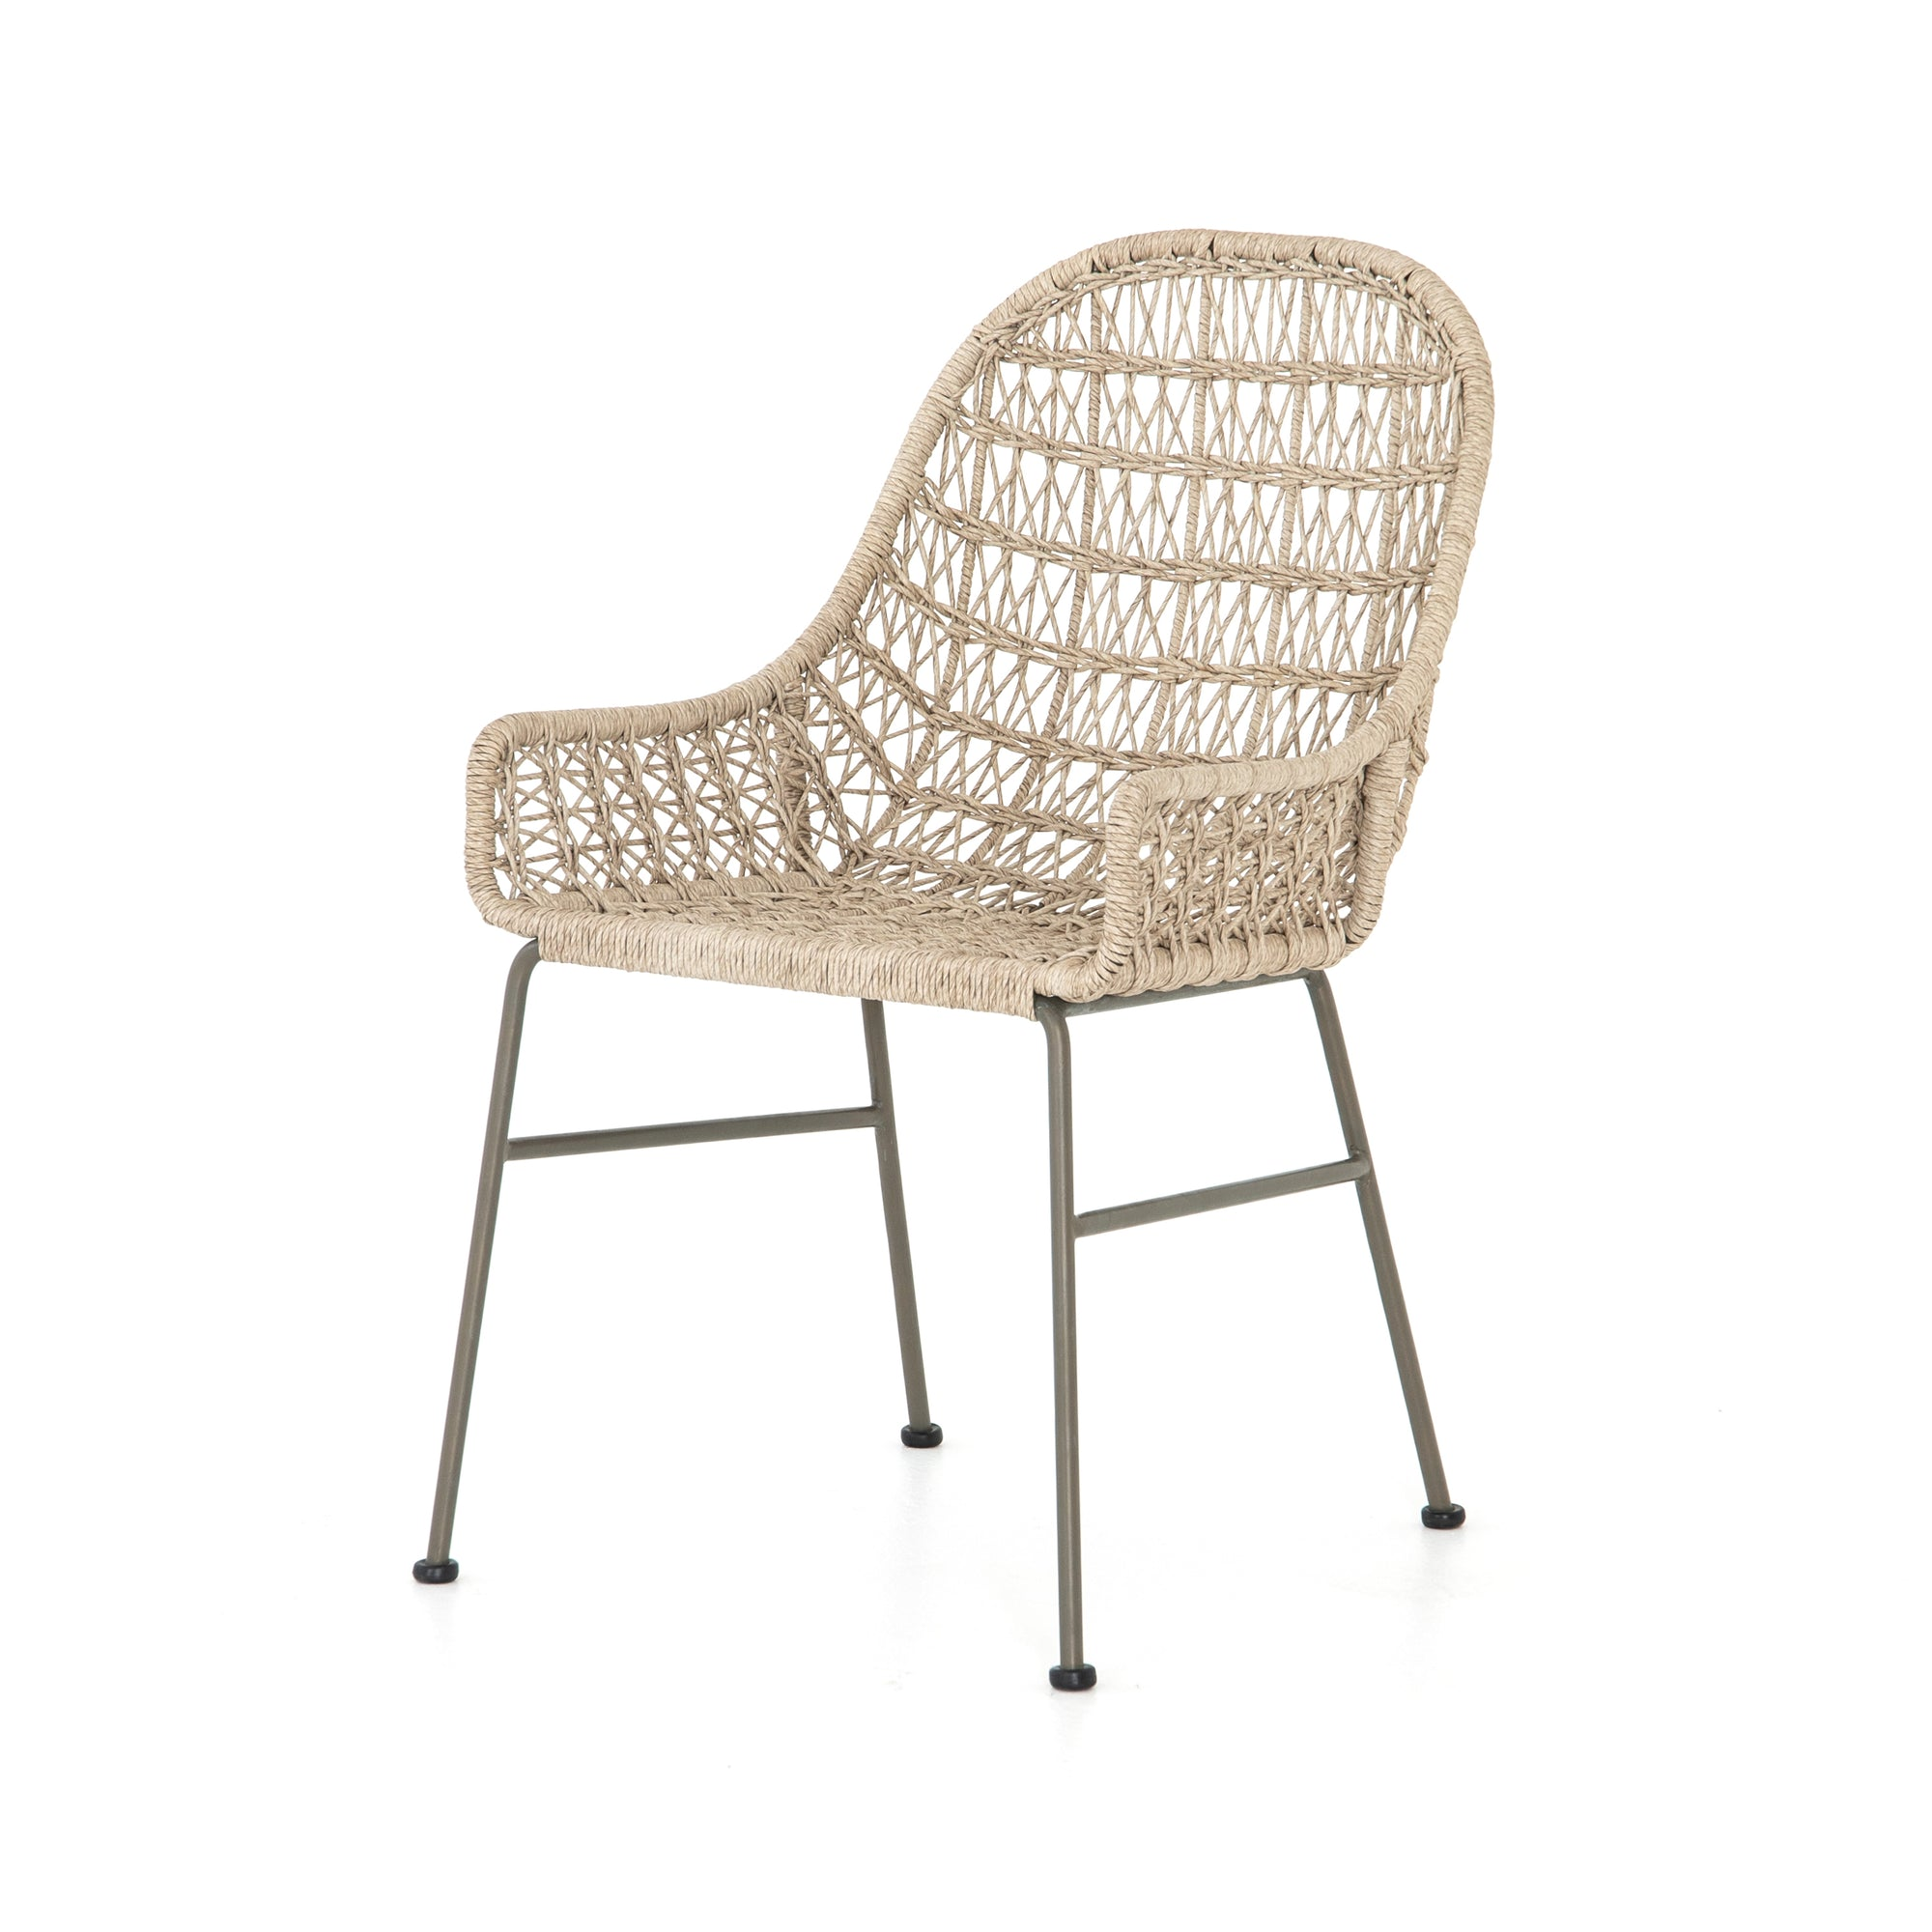 Bandera Outdoor Dining Chair - Vintage